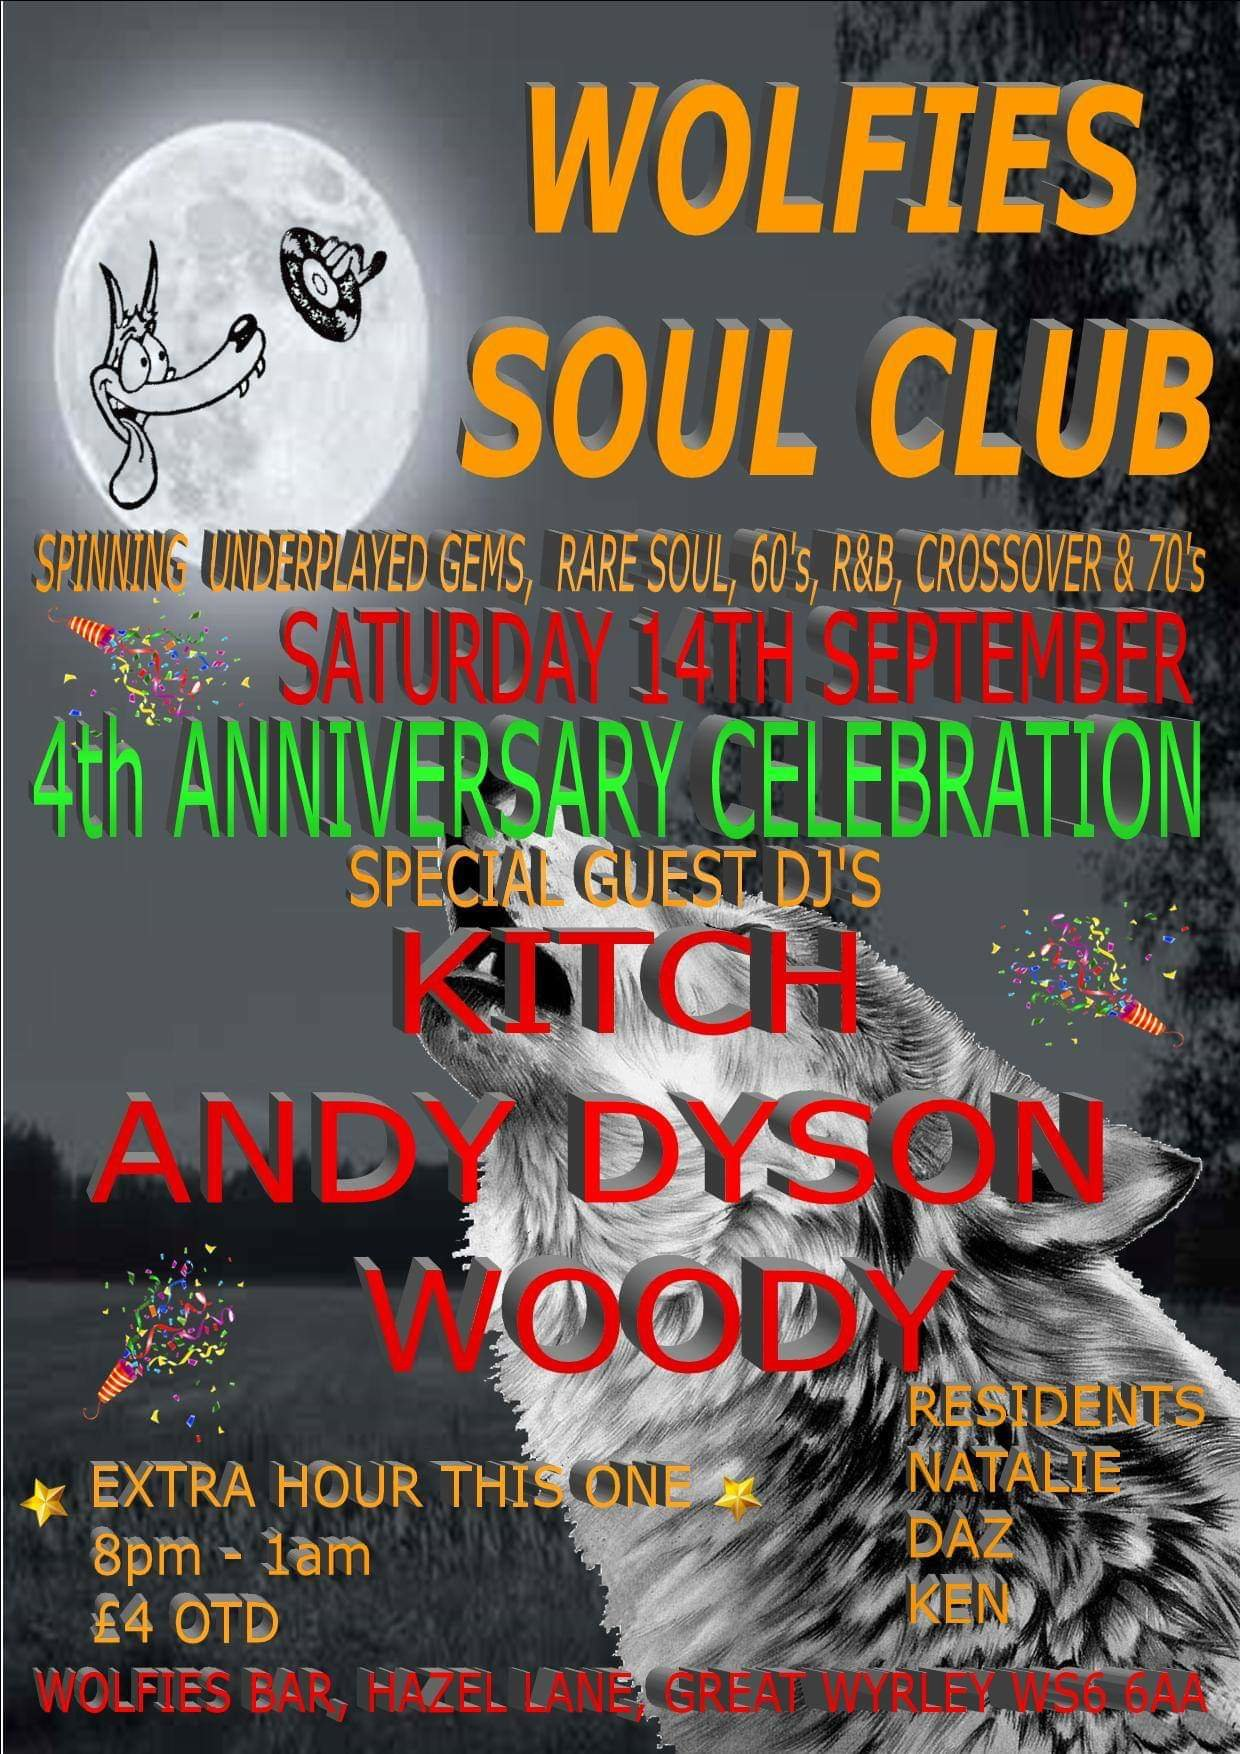 Wolfies Soul Club 4th Anniversary Kitch Andy Dyson Woody flyer